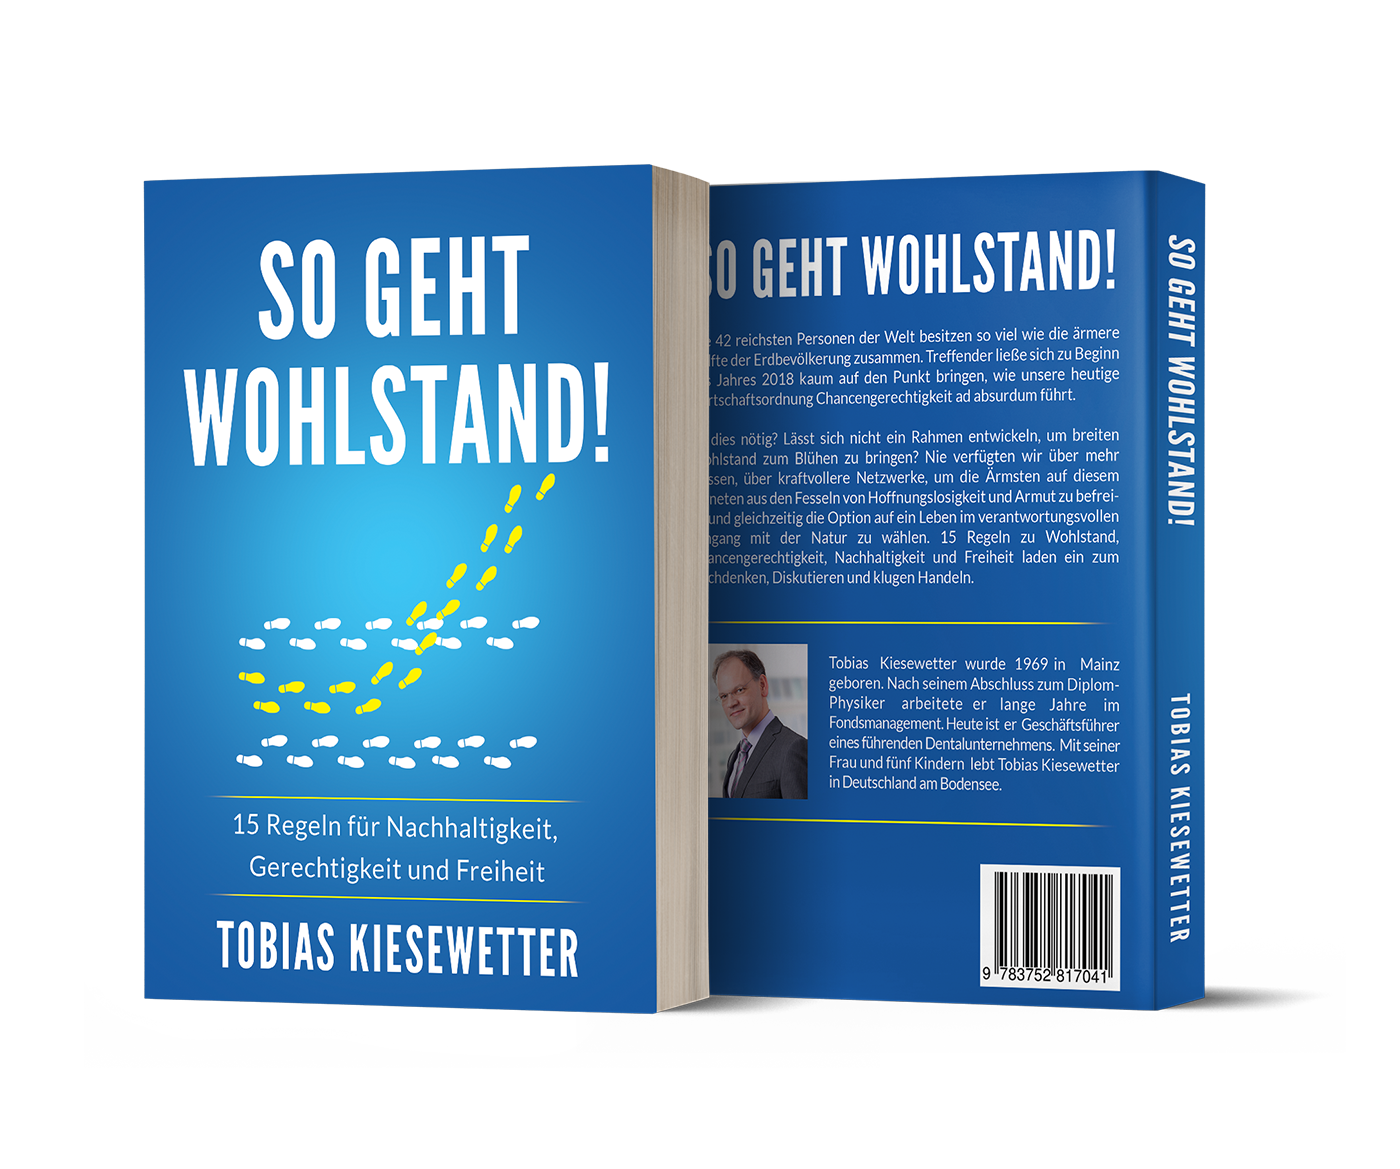 New Cover: So geht Wohlstand!